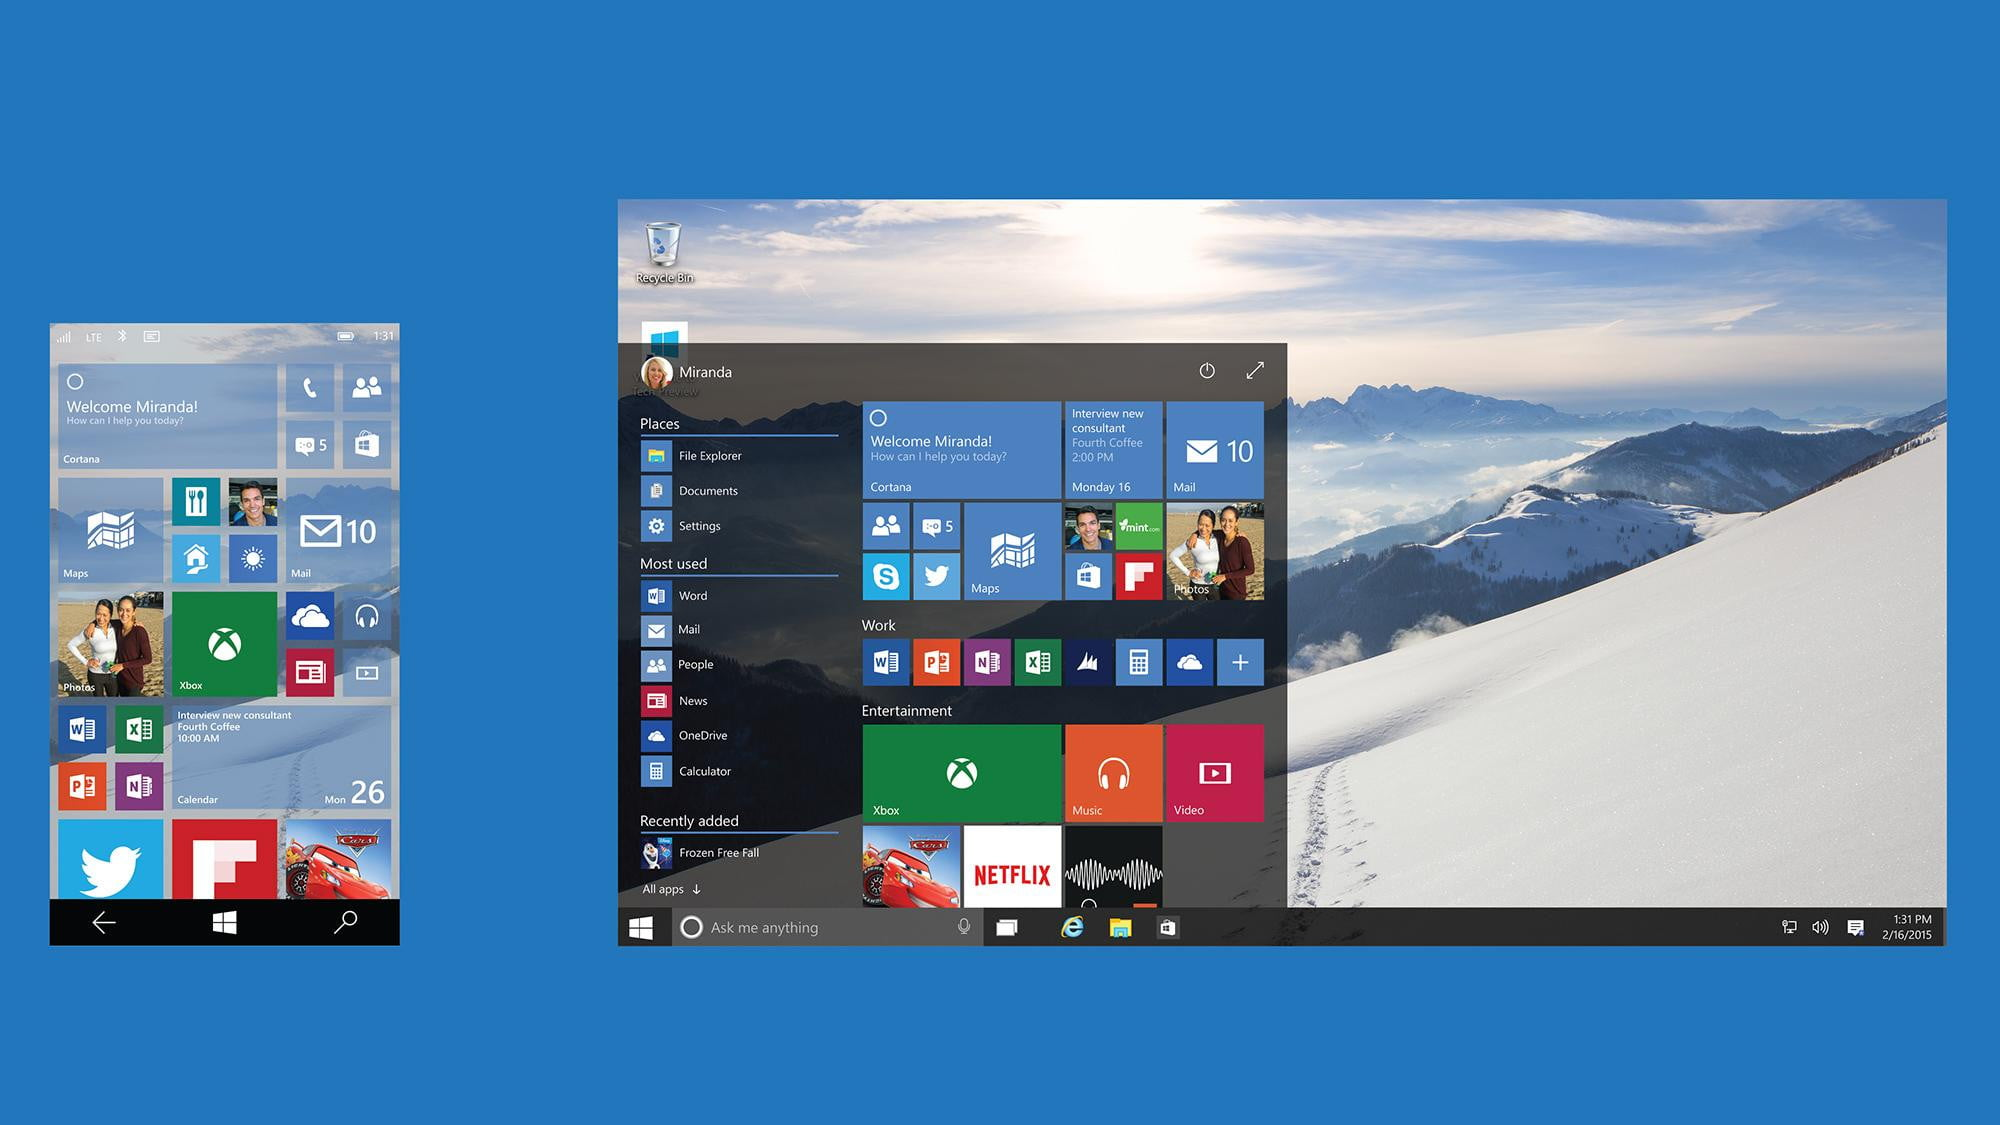 Microsoft moves Windows 10 forward with innovative features.